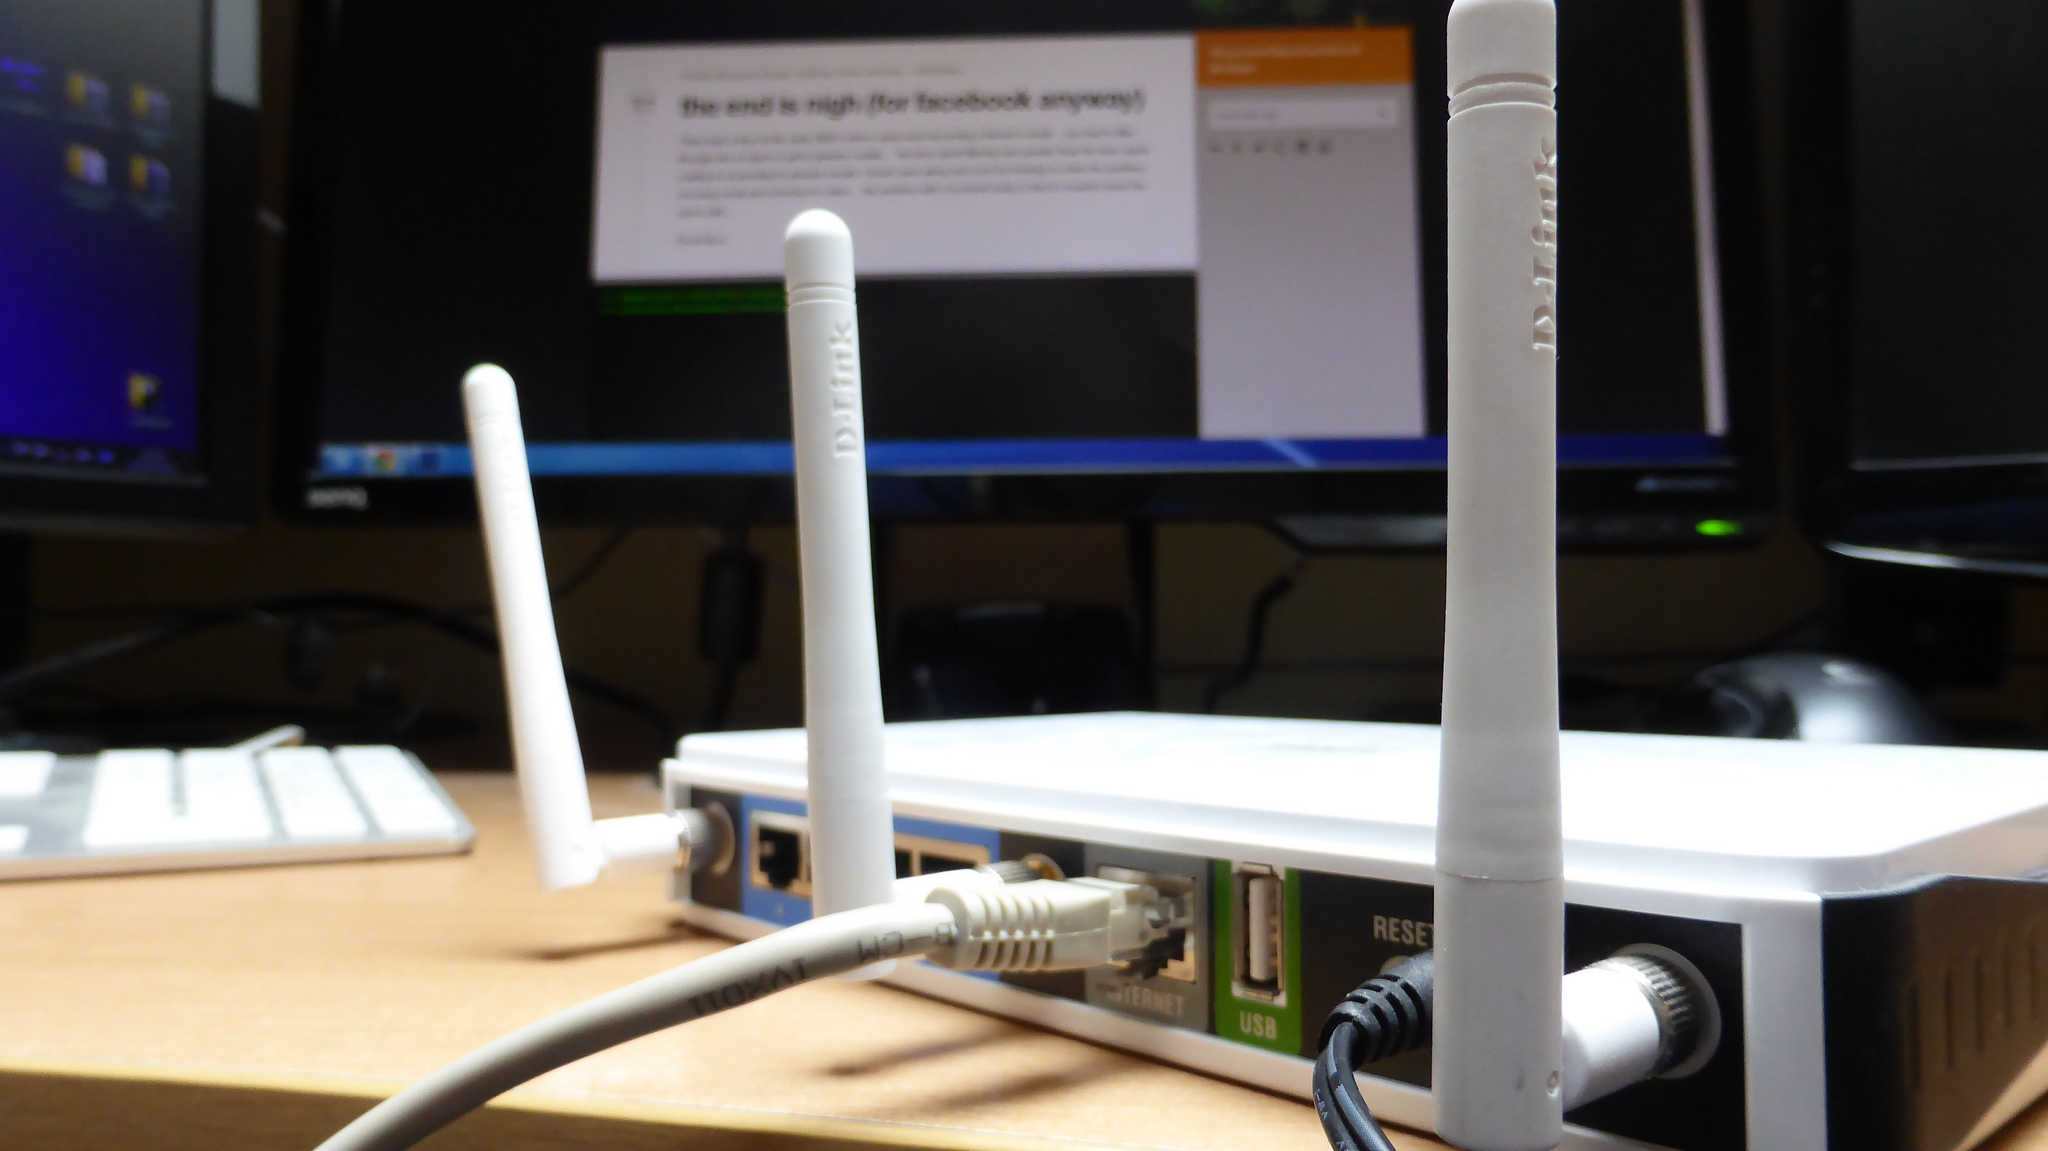 Securing your wireless router and WiFi network | Comparitech